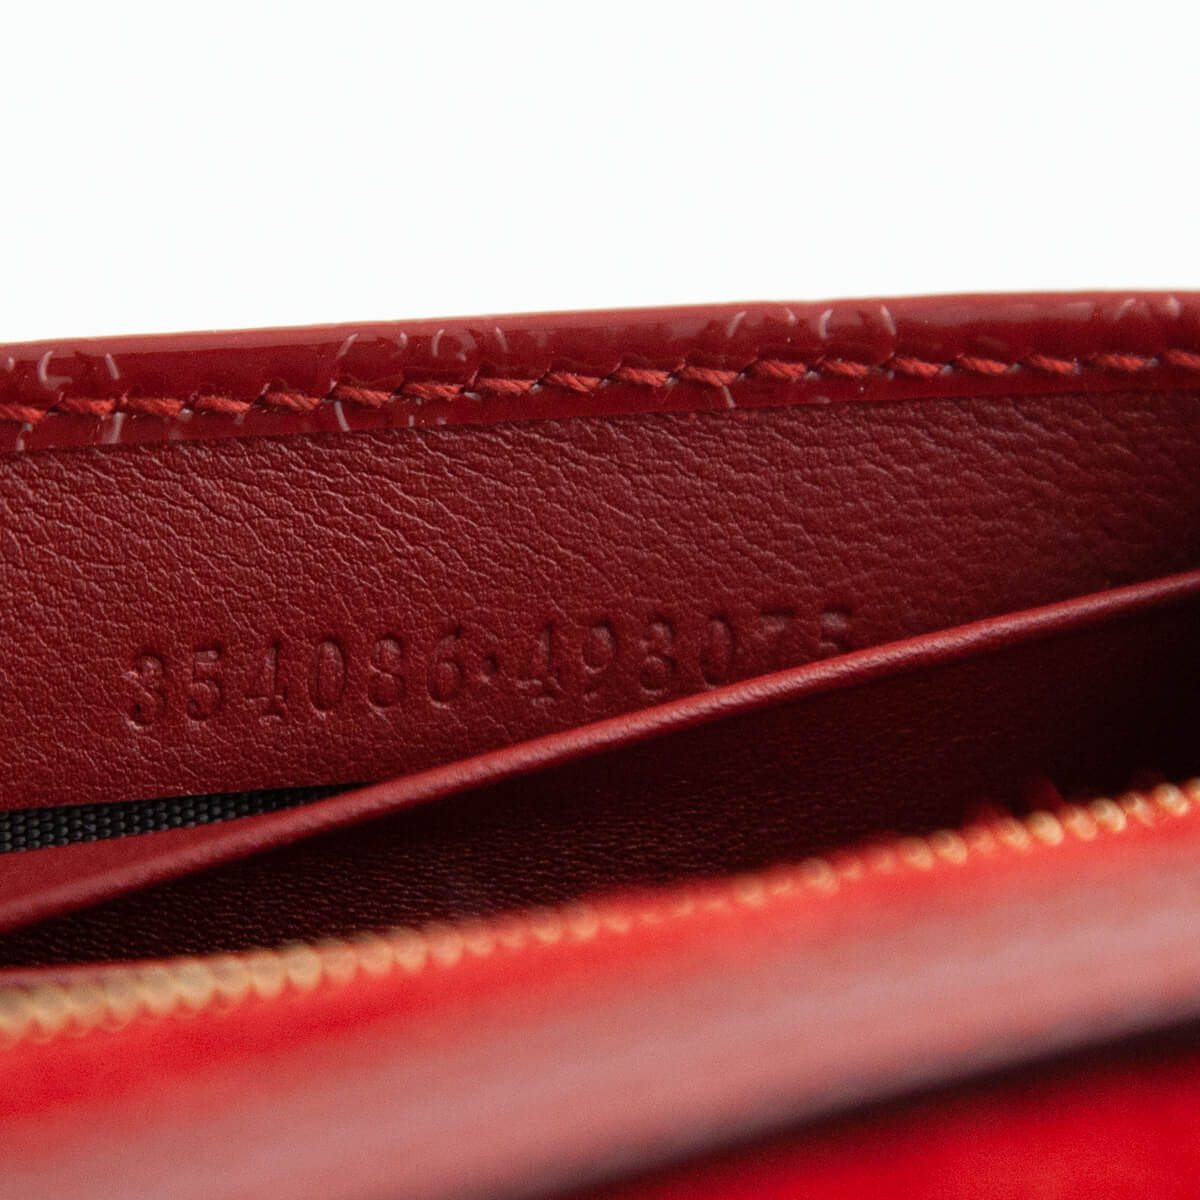 0748ea859ac751 ... Gucci Red Patent Micro Guccissima Nice Wallet on Chain - LOVE that BAG  - Preowned Authentic